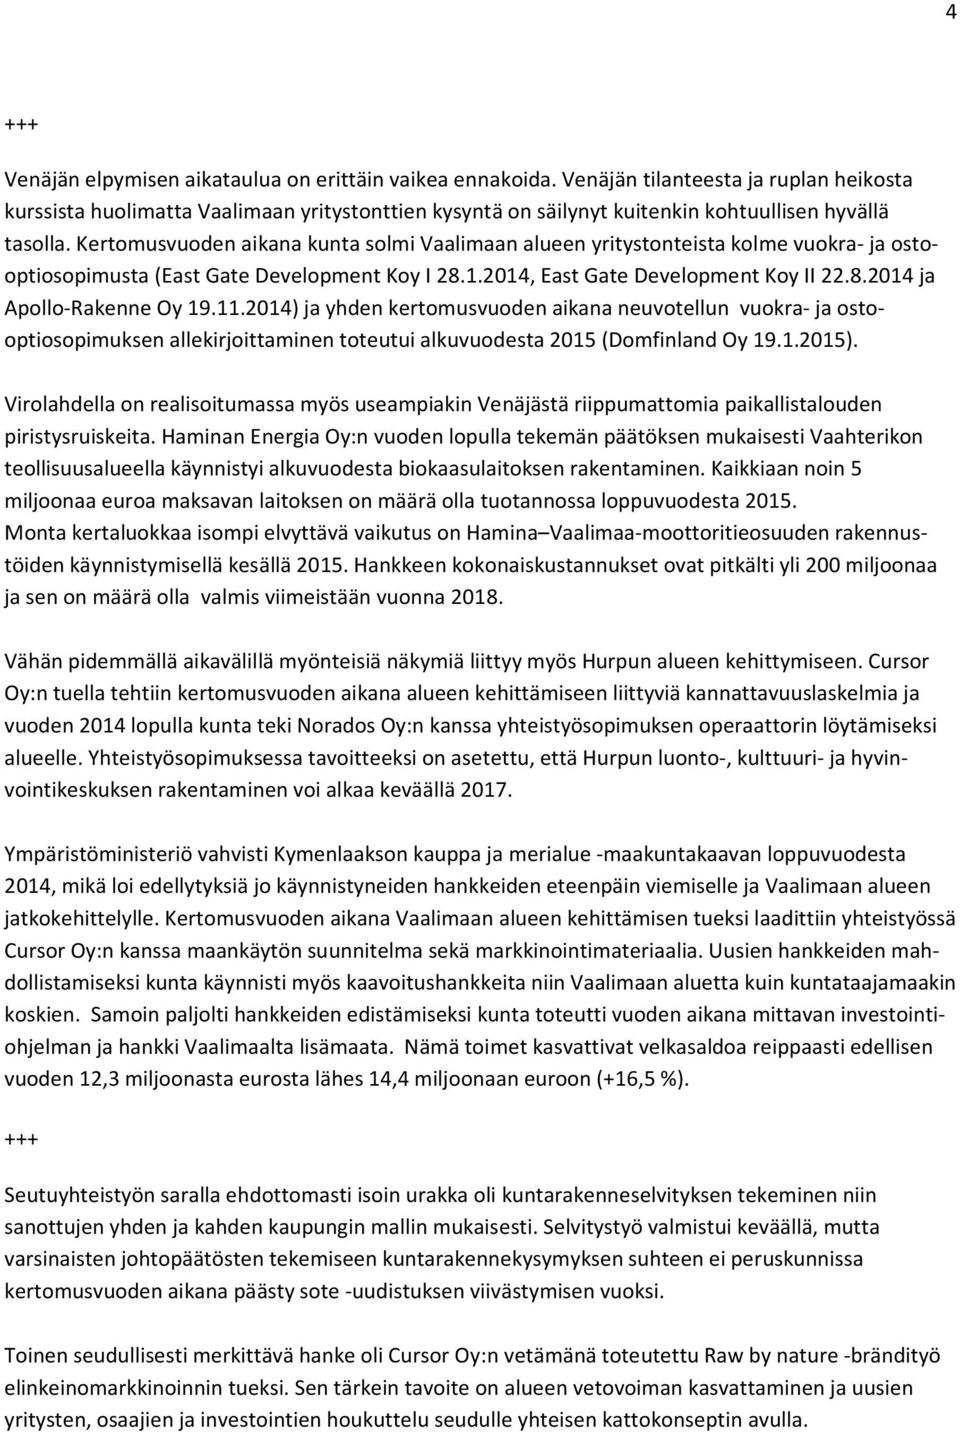 Kertomusvuoden aikana kunta solmi Vaalimaan alueen yritystonteista kolme vuokra- ja ostooptiosopimusta (East Gate Development Koy I 28.1.2014, East Gate Development Koy II 22.8.2014 ja Apollo-Rakenne Oy 19.